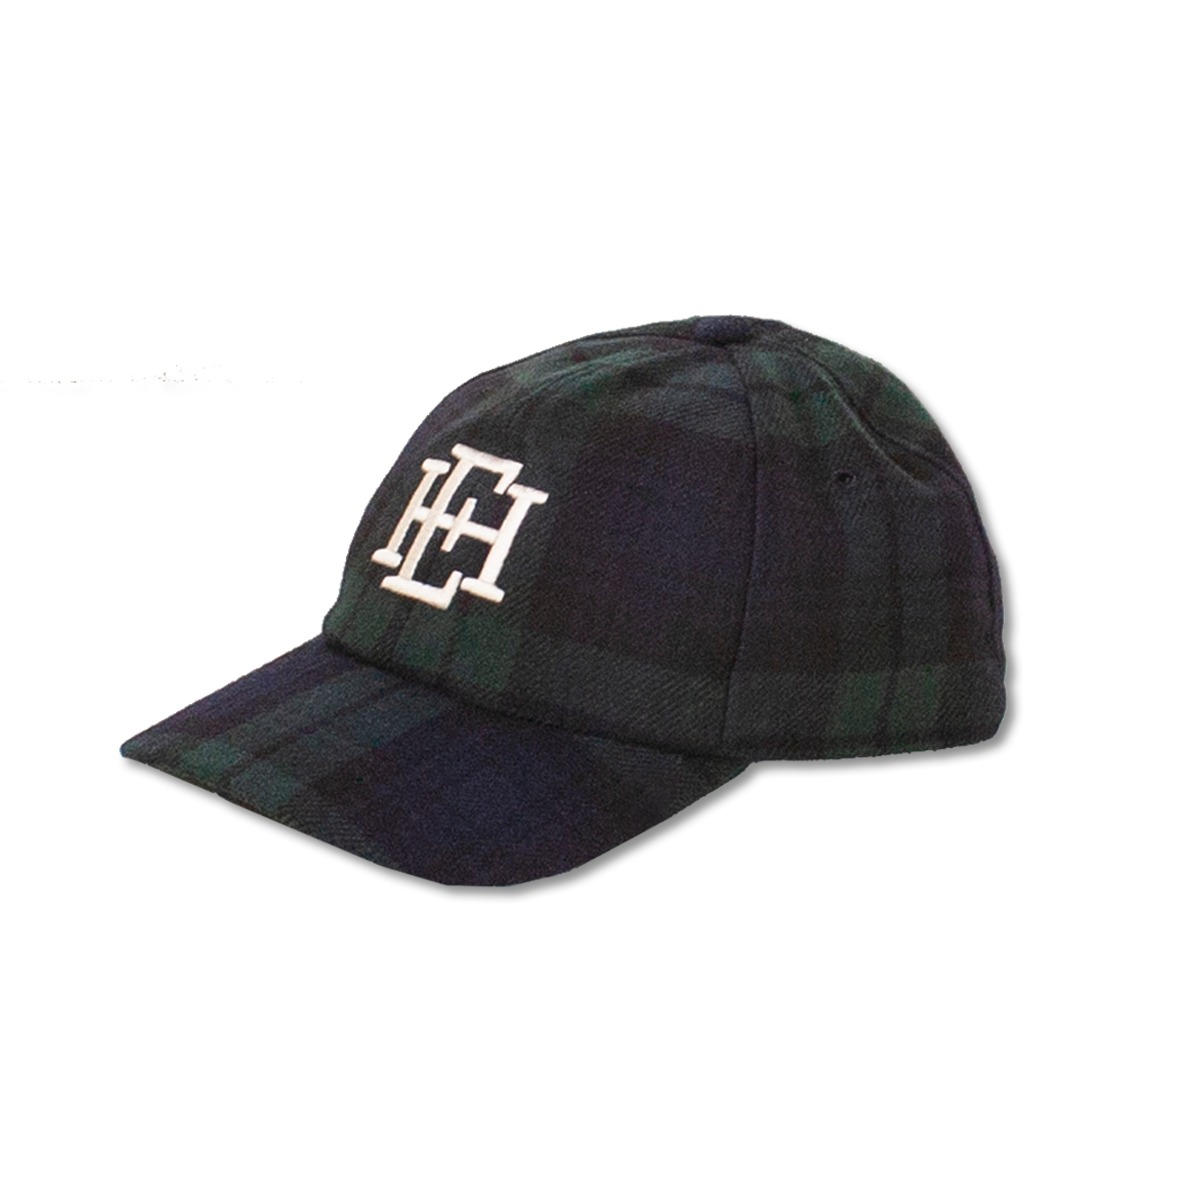 [EAST HARBOUR SURPLUS] TIGER BLACKWATCH BASEBALL CAP 'BLACKWATCH'